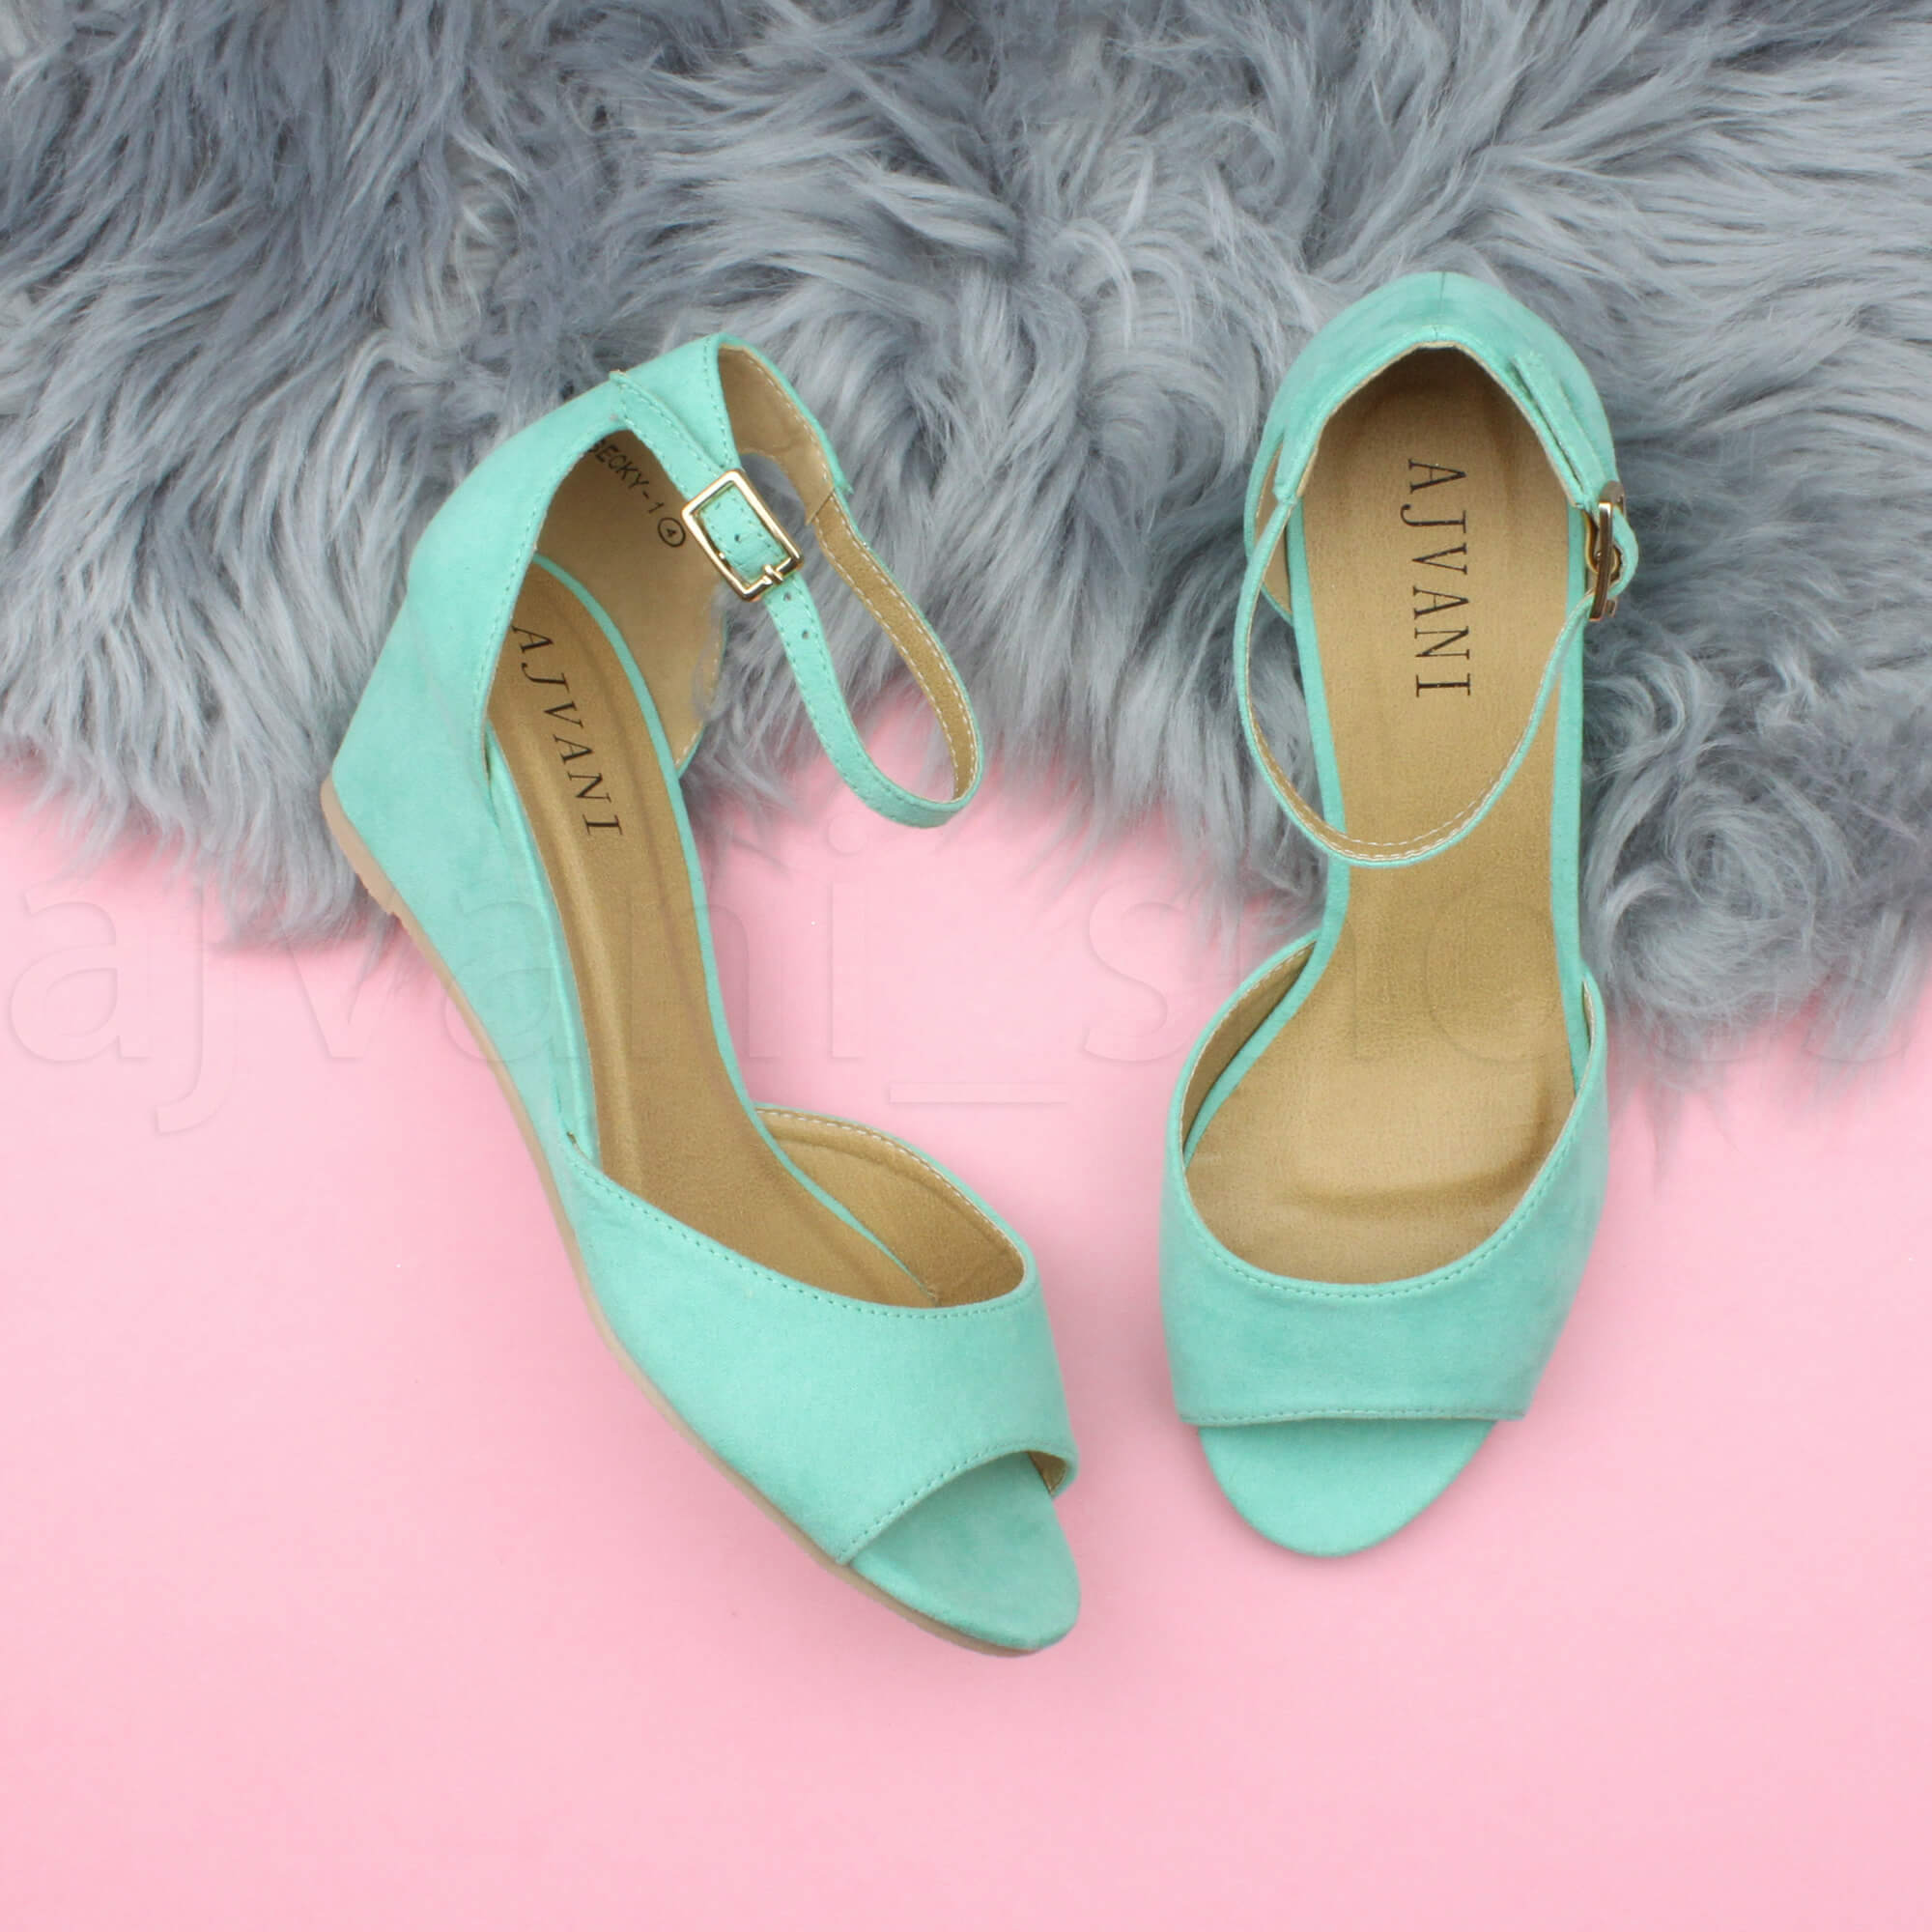 WOMENS-LADIES-LOW-MID-WEDGE-HEEL-ANKLE-STRAP-SMART-CASUAL-EVENING-SANDALS-SIZE thumbnail 77